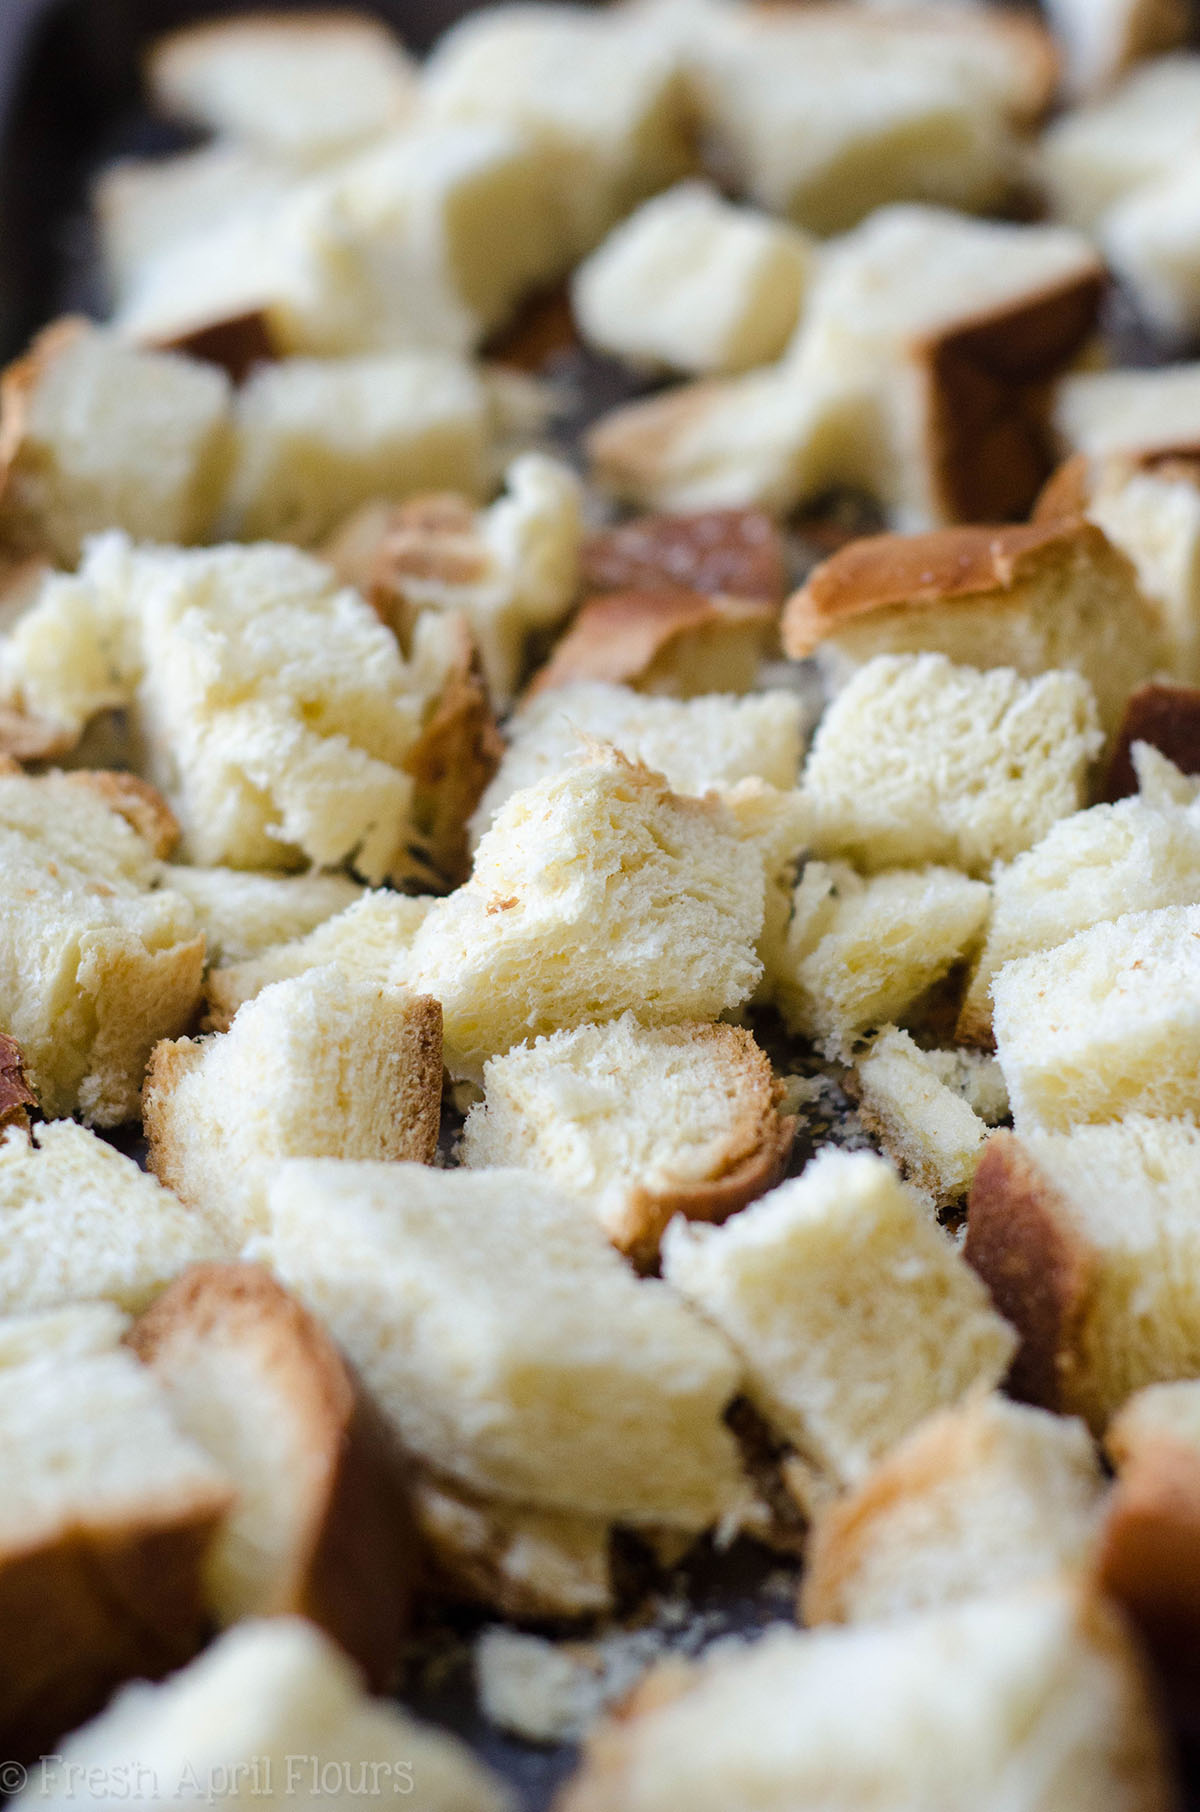 stale bread pieces ready for french toast casserole